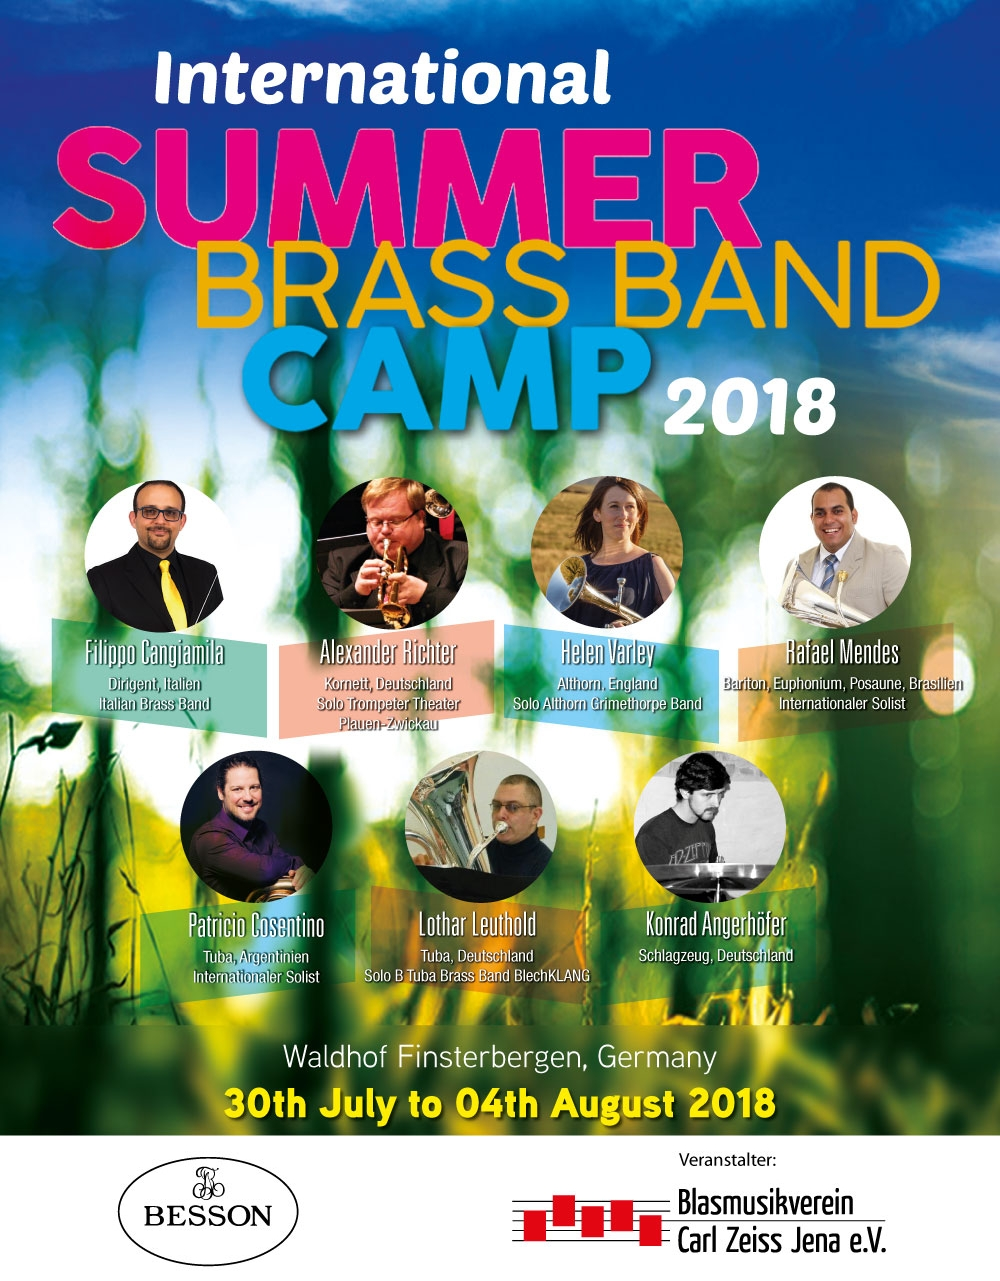 International Summer Brass Band Camp 2018